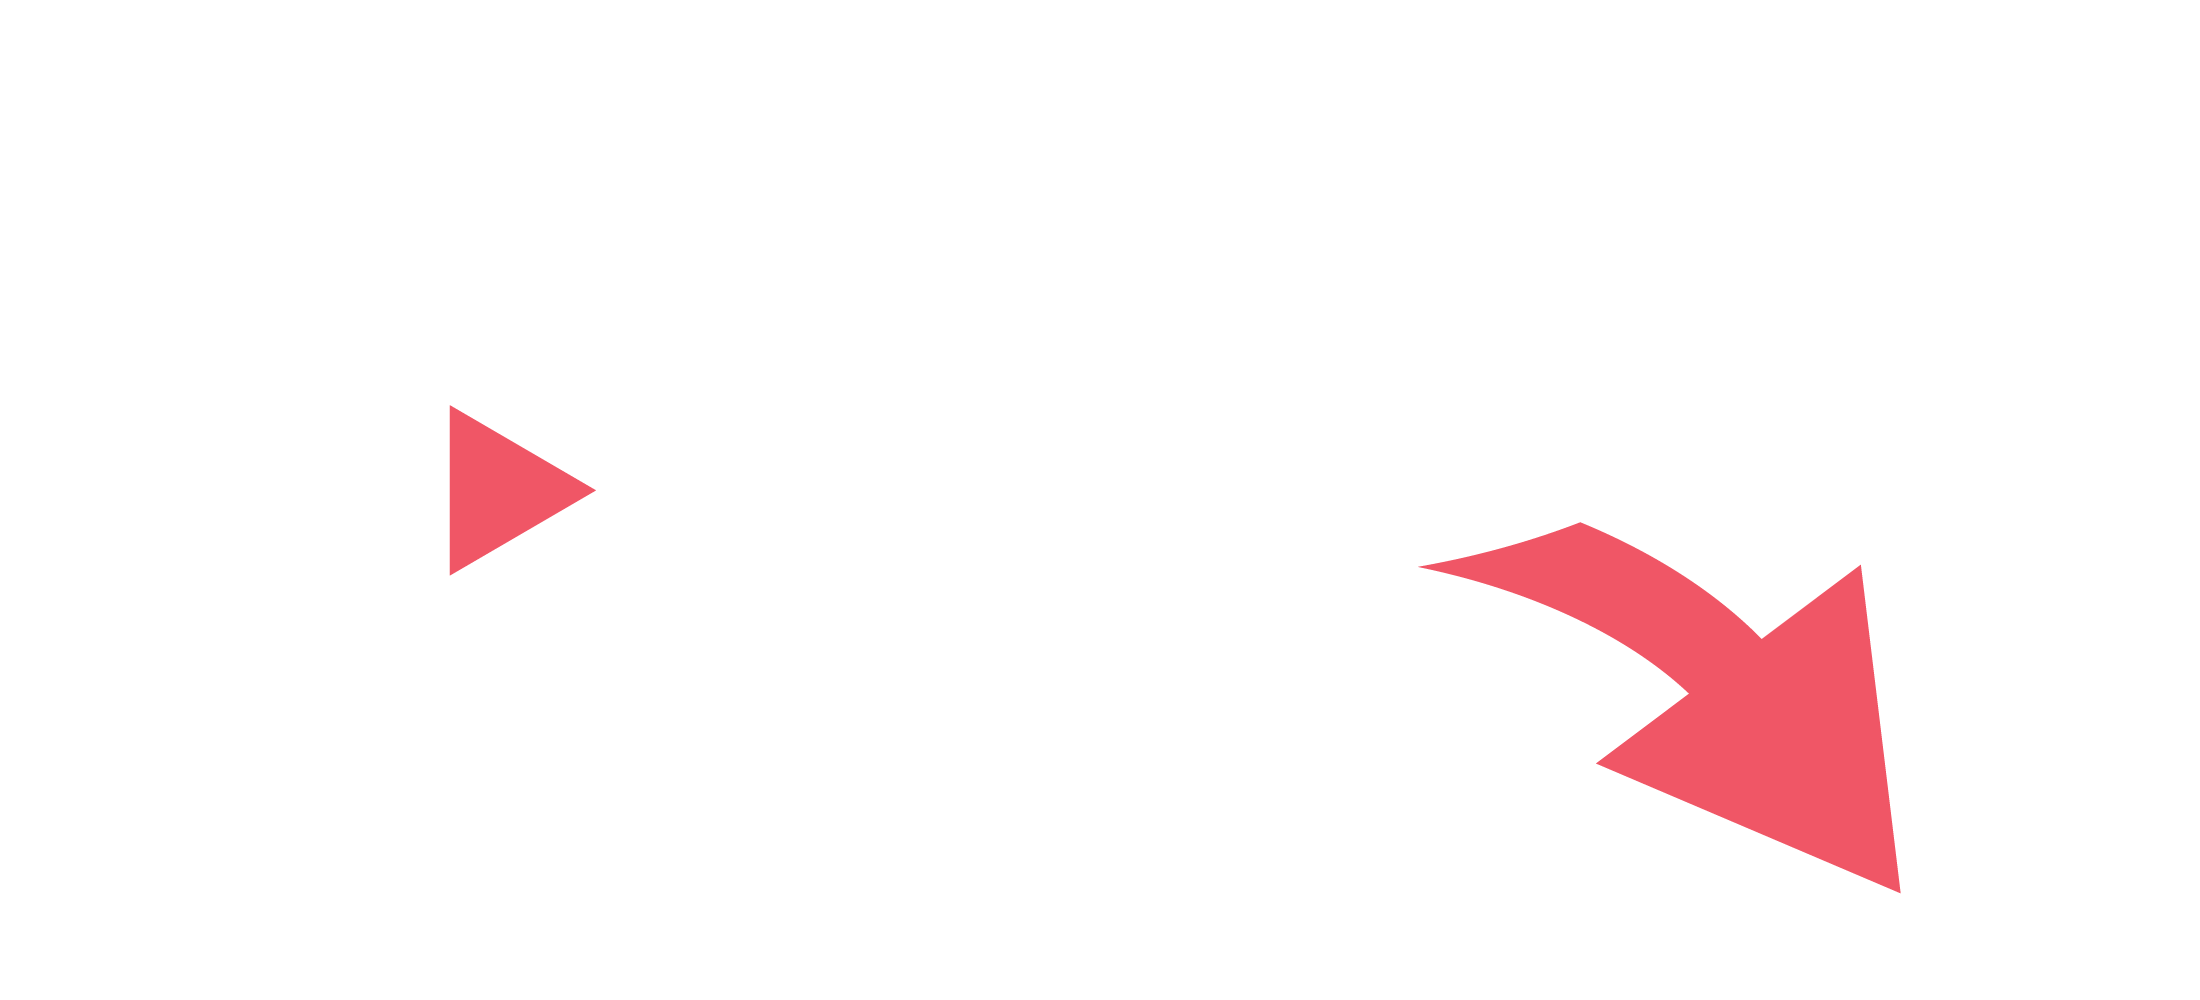 FLEX™ Interactive Dynamic Video by ONtrepreneur Academy™